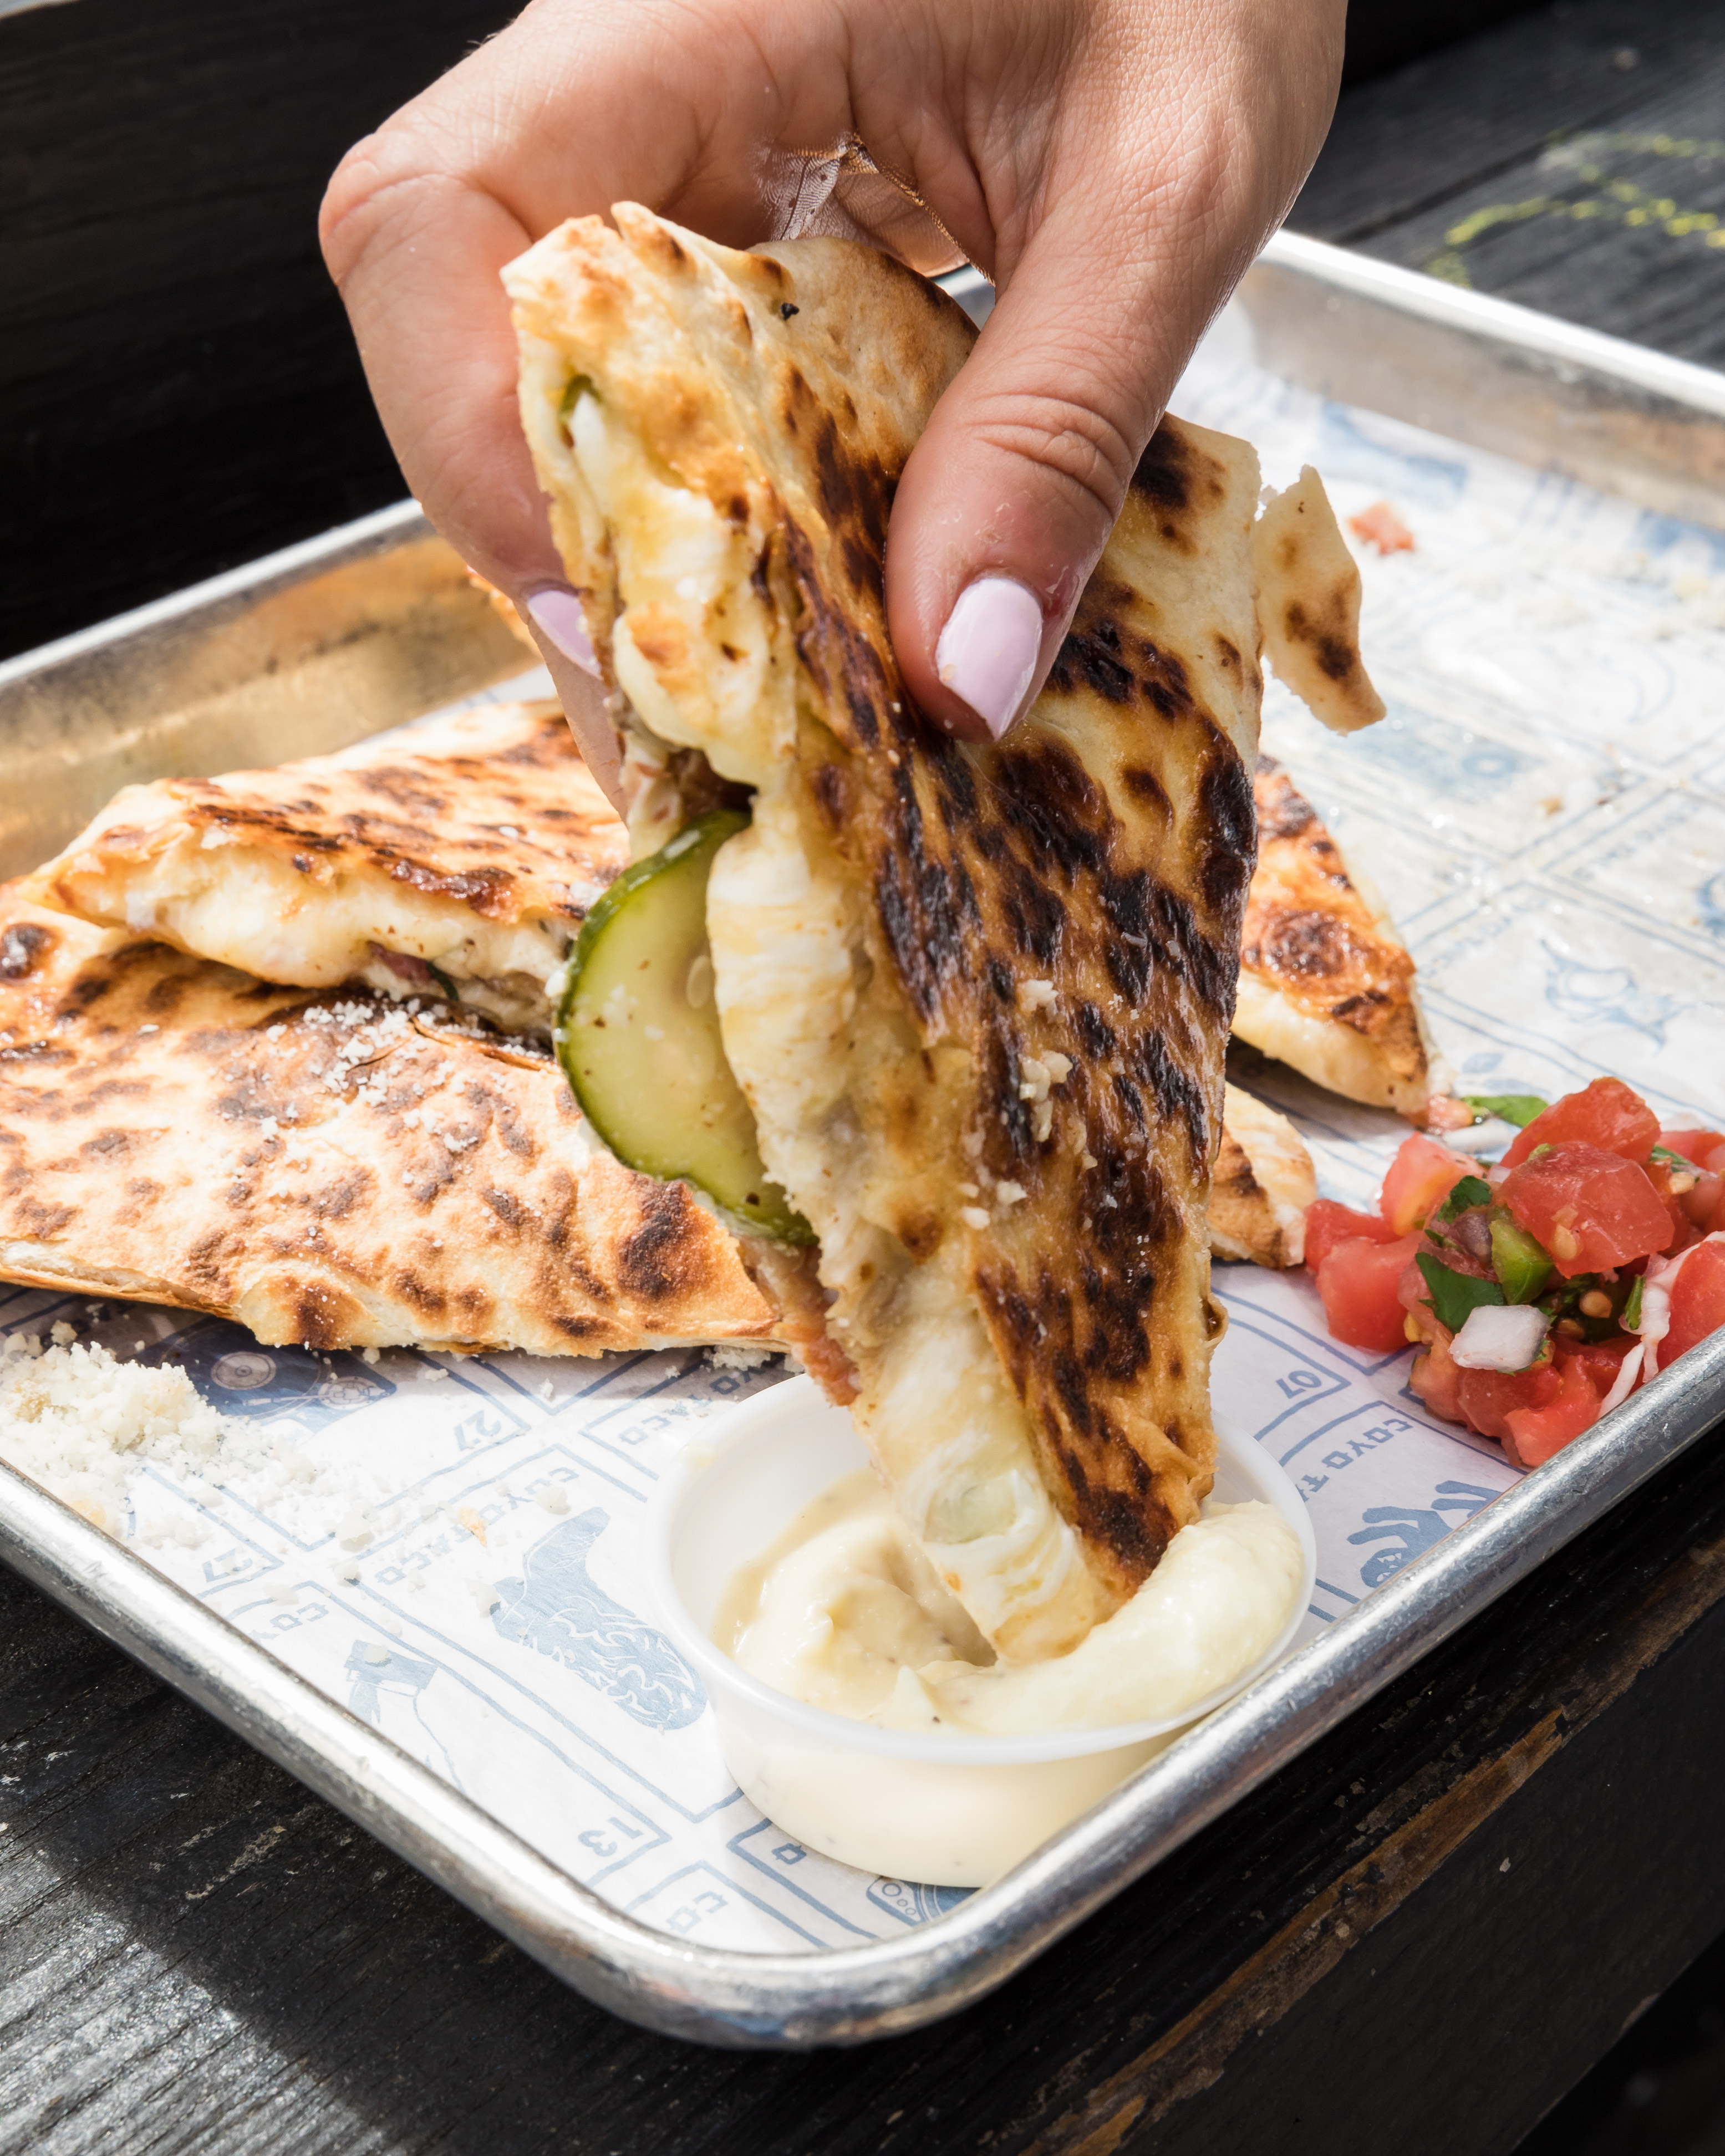 quesadilla being dipped into a sauce